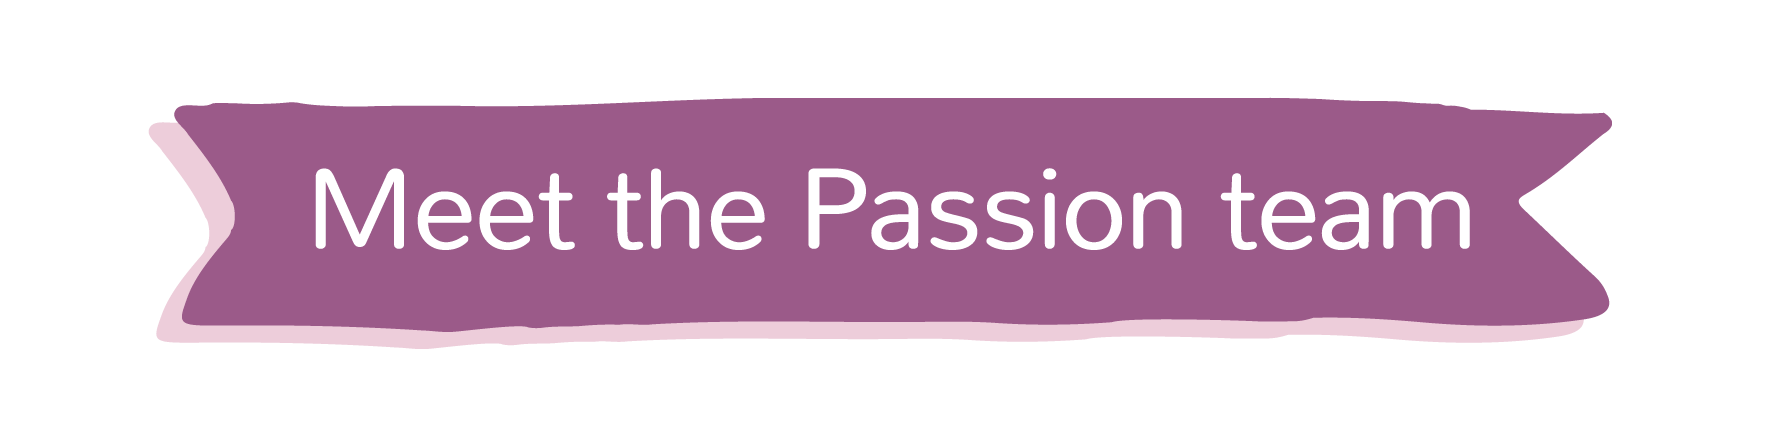 Meet the Passion team